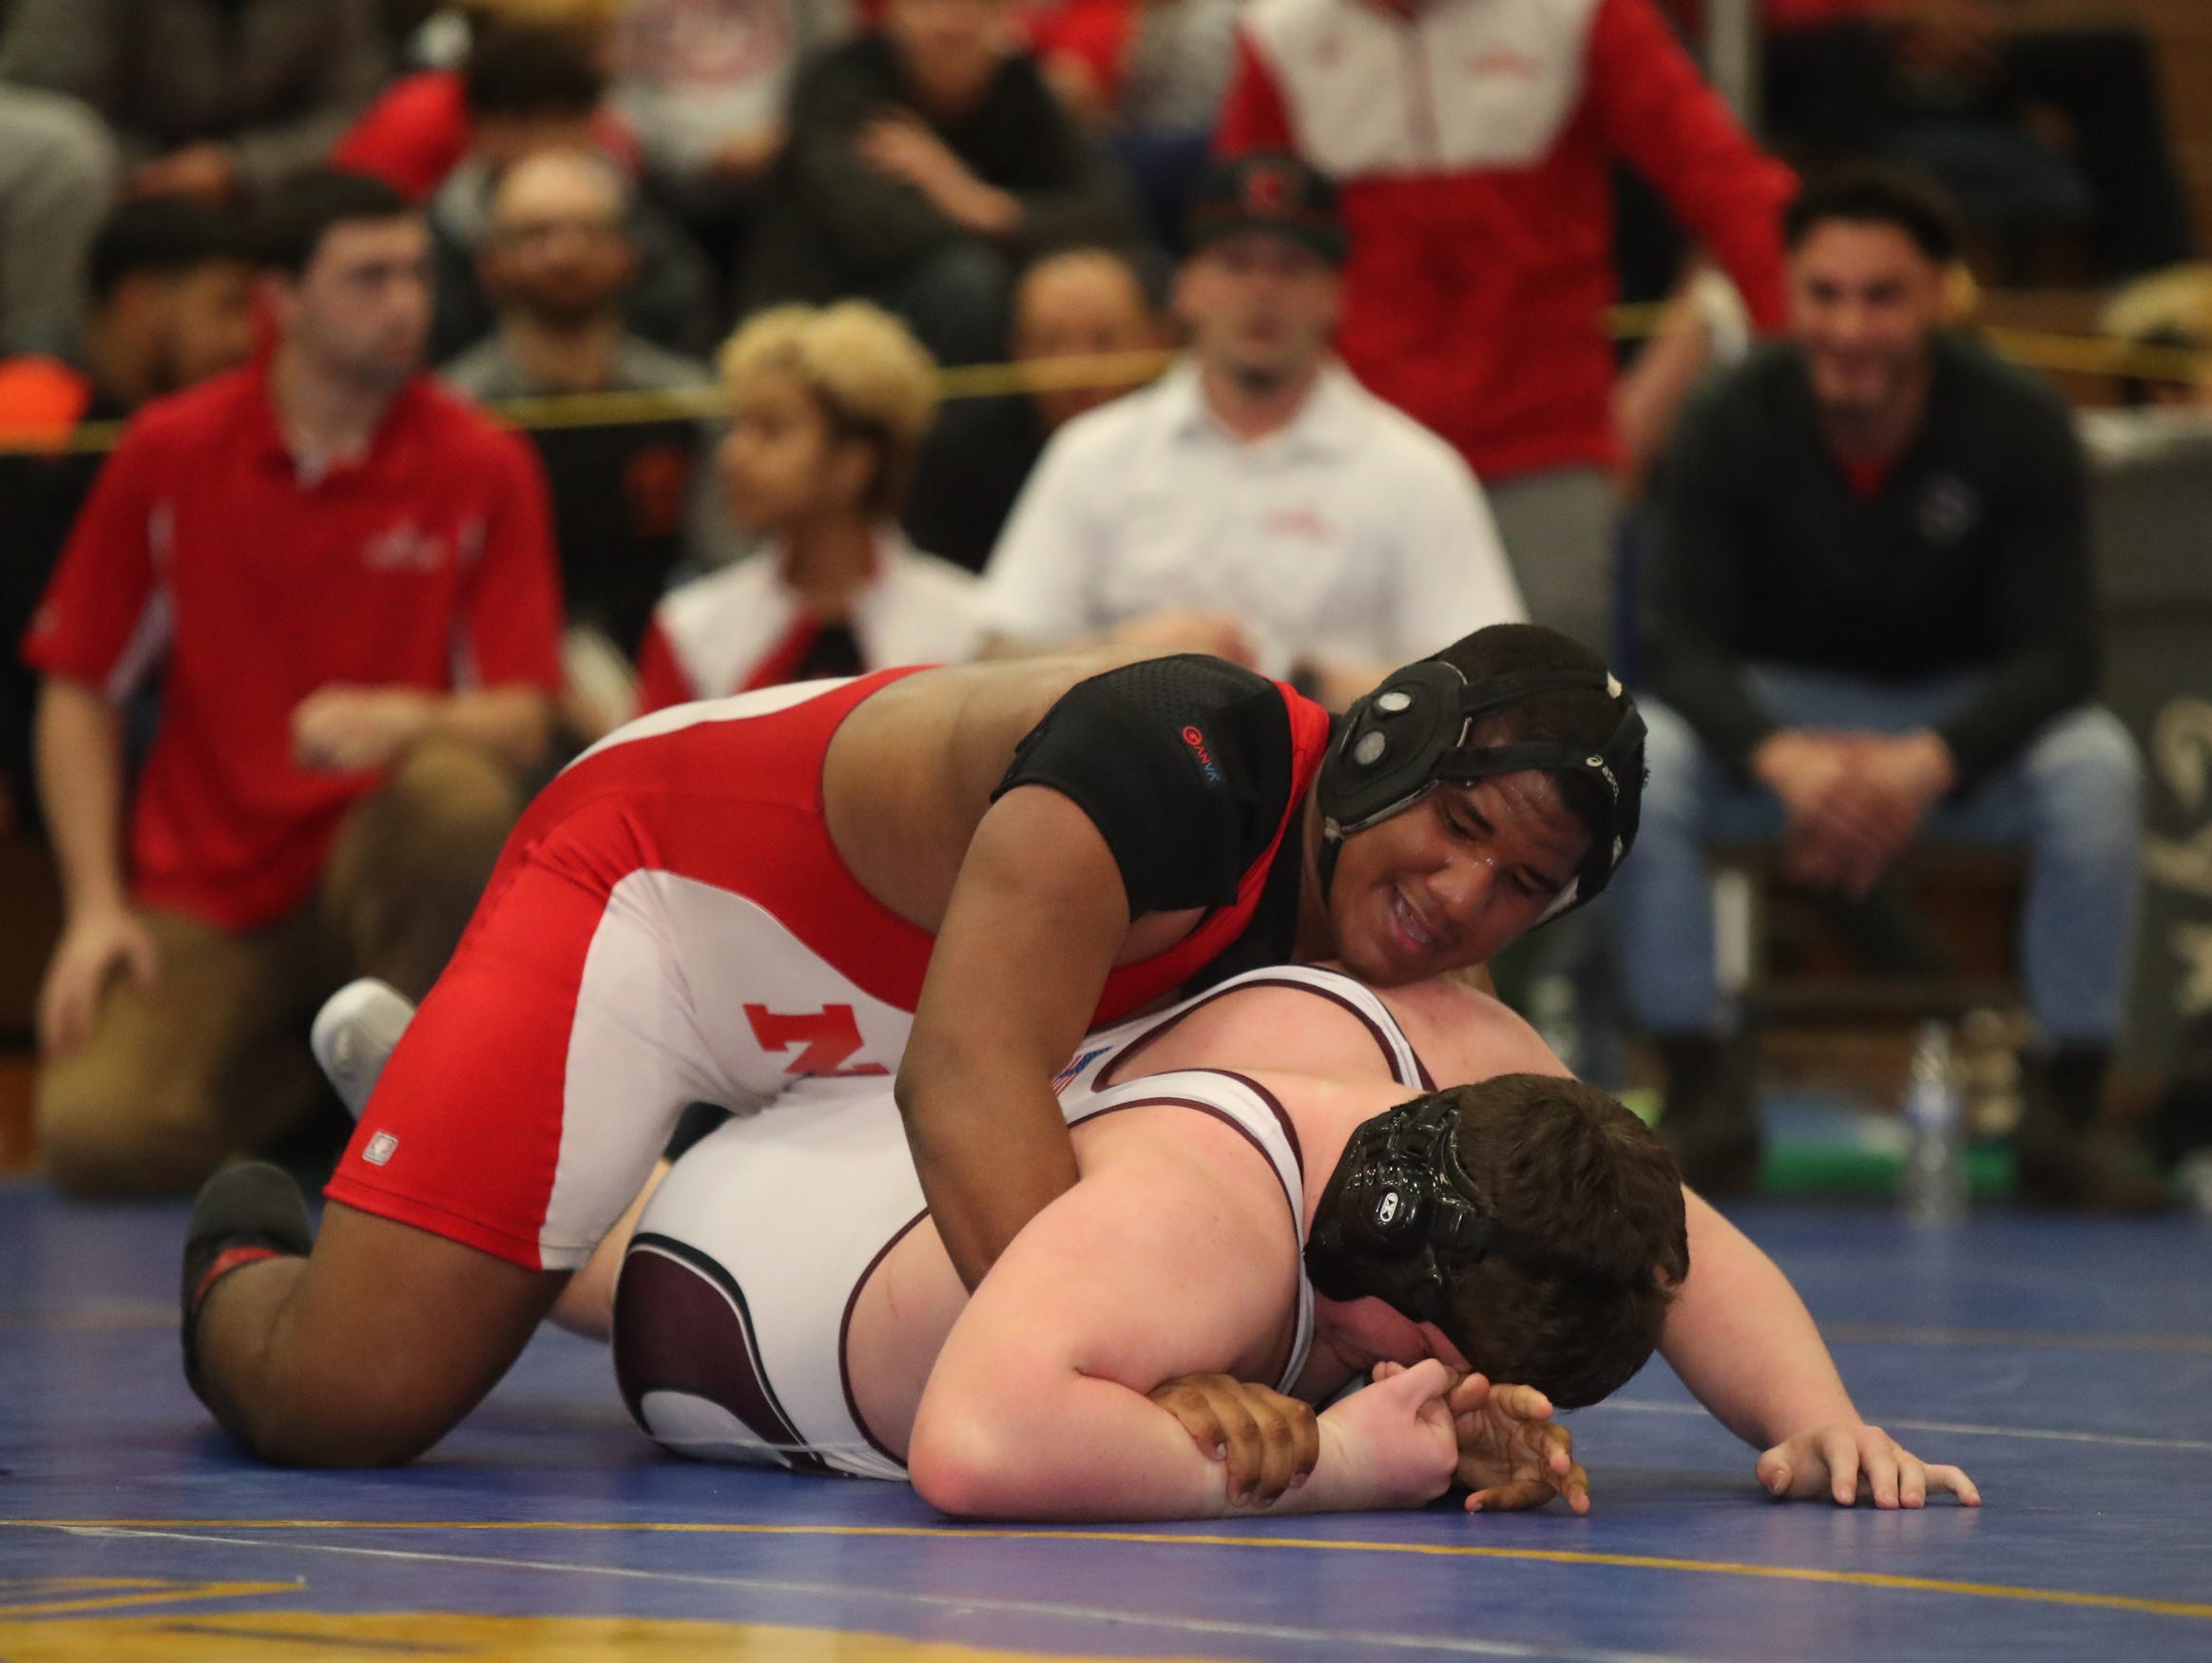 North Rockland's Emmanuel Mena defeats Ossining's Joe Nolan in the 285-pound match of the division I wrestling finals at Clarkstown South High School on Sunday, February 10, 2019.